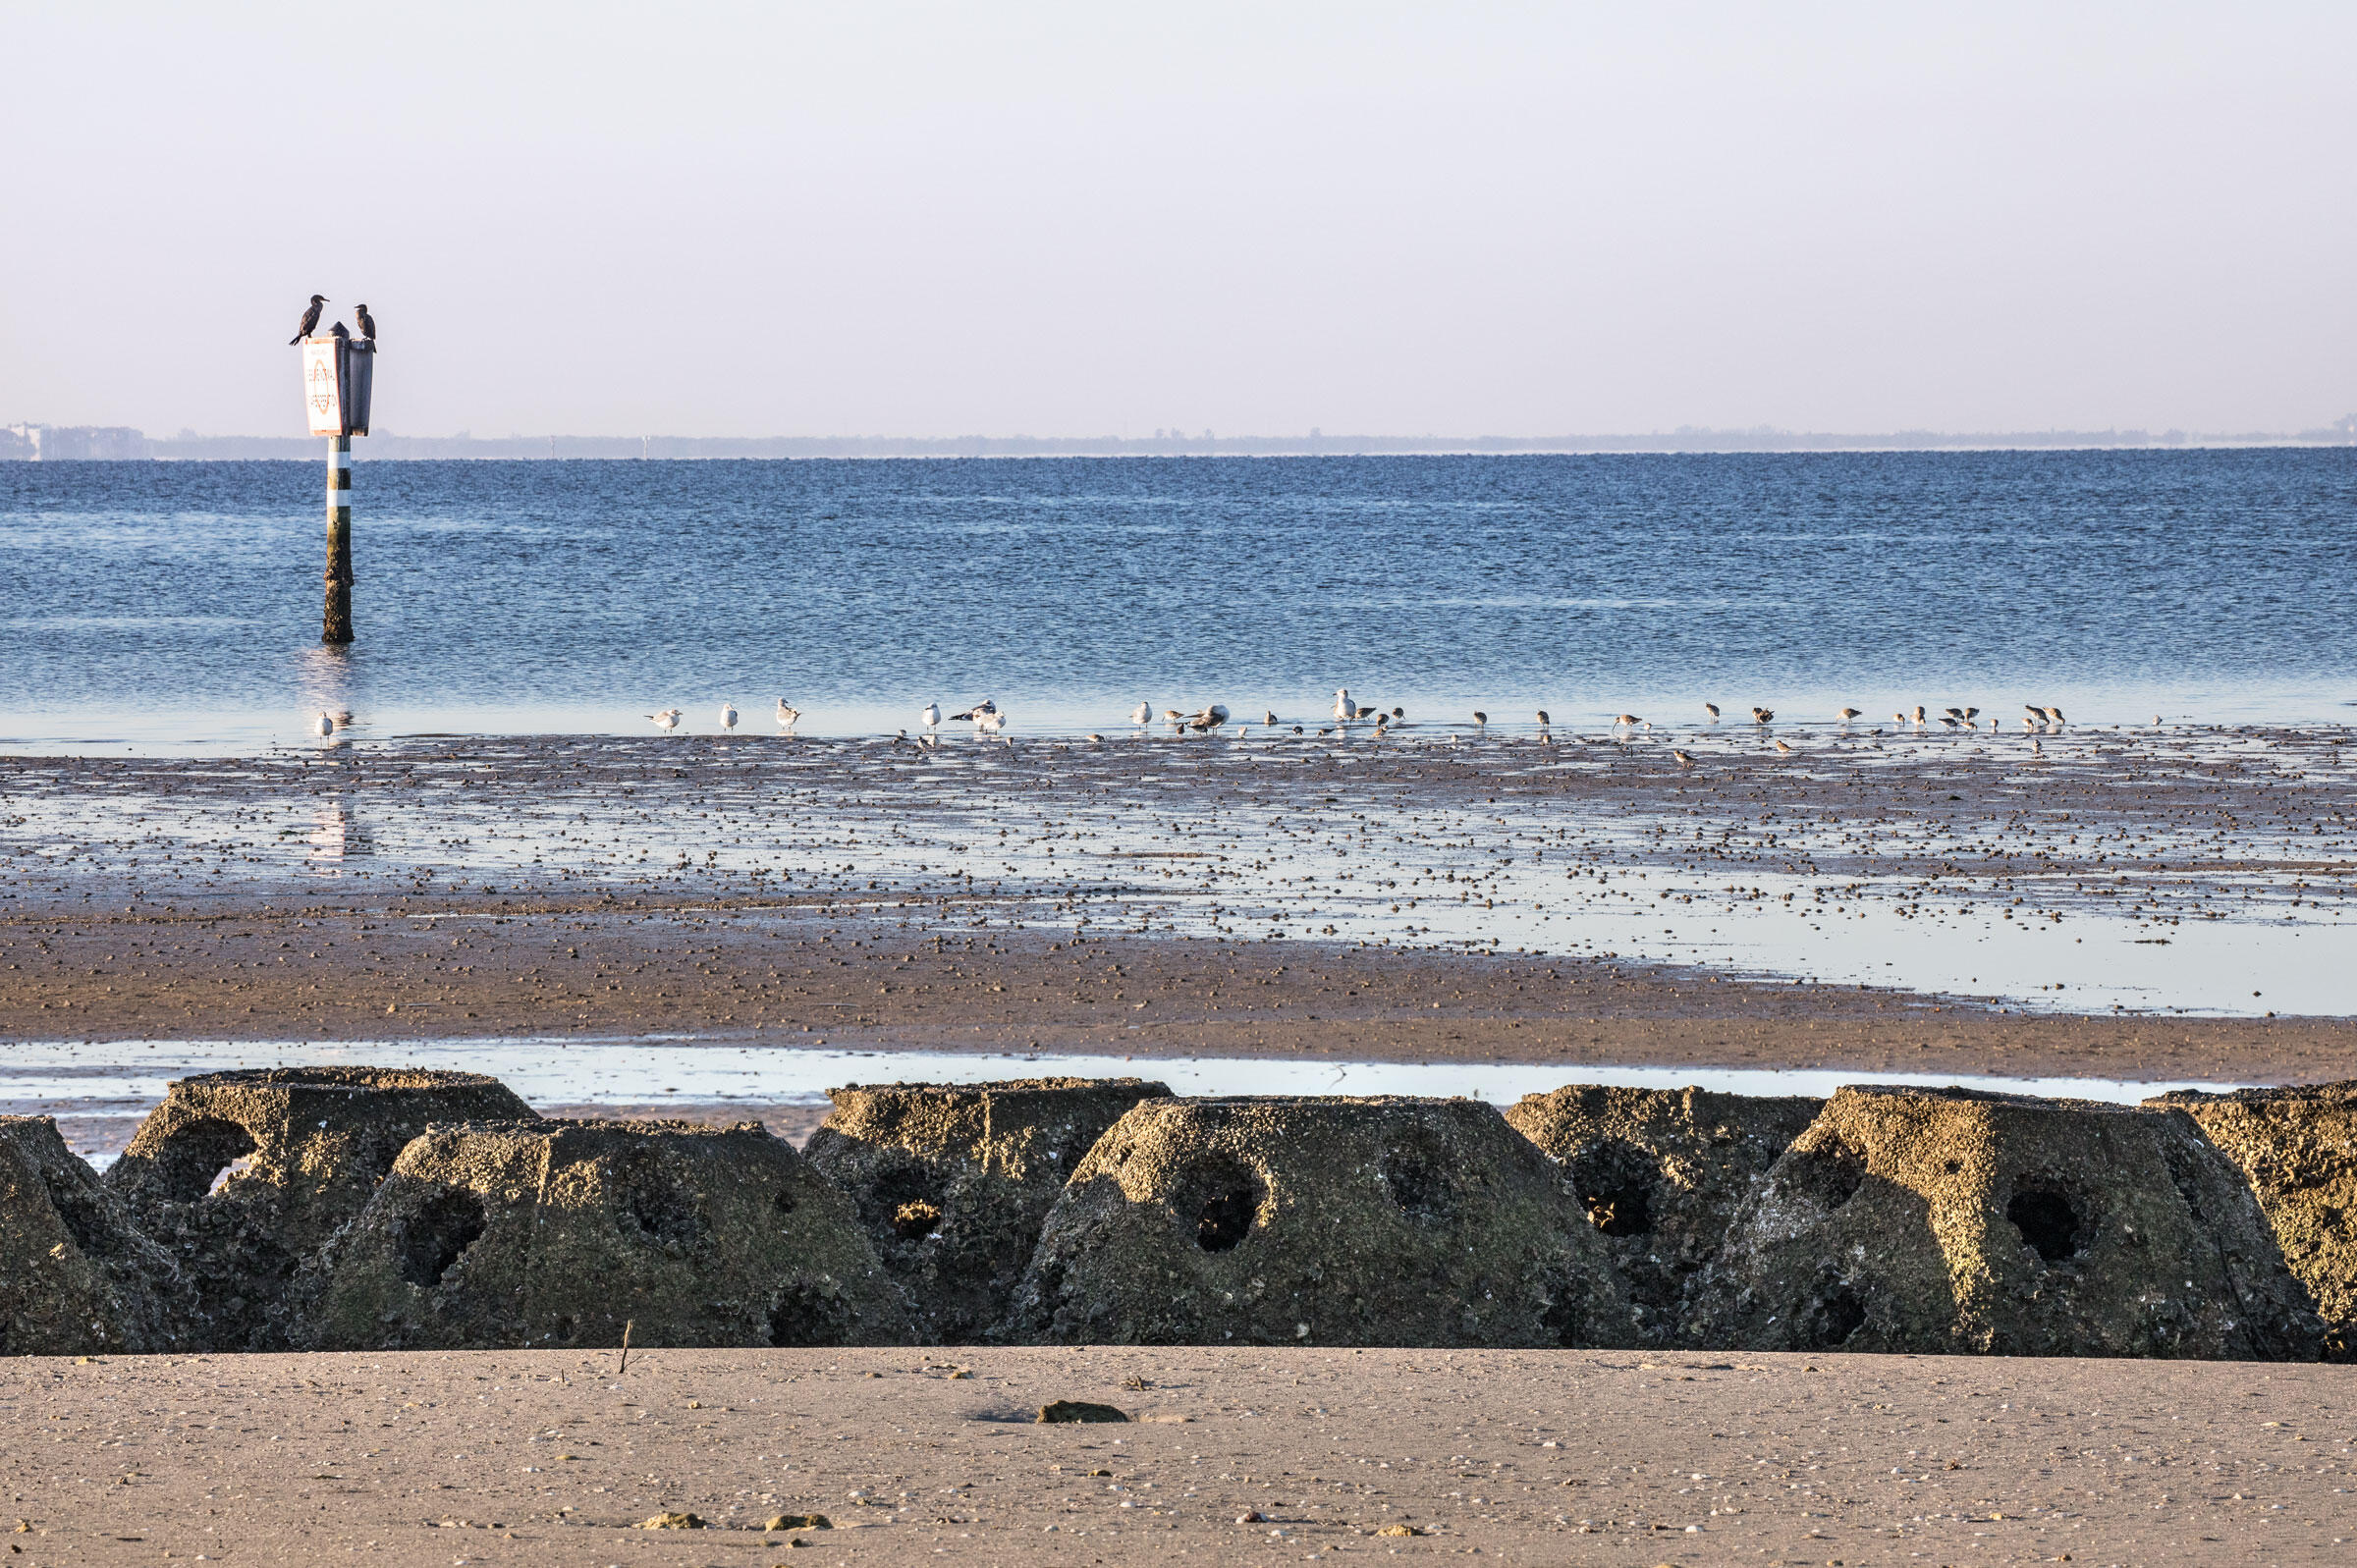 Shorebirds forage in a mudflat beyond a line of Reef Balls off of Bird Island; the manmade breakwater absorbs large waves and provides habitat for oysters. Andrew Moore